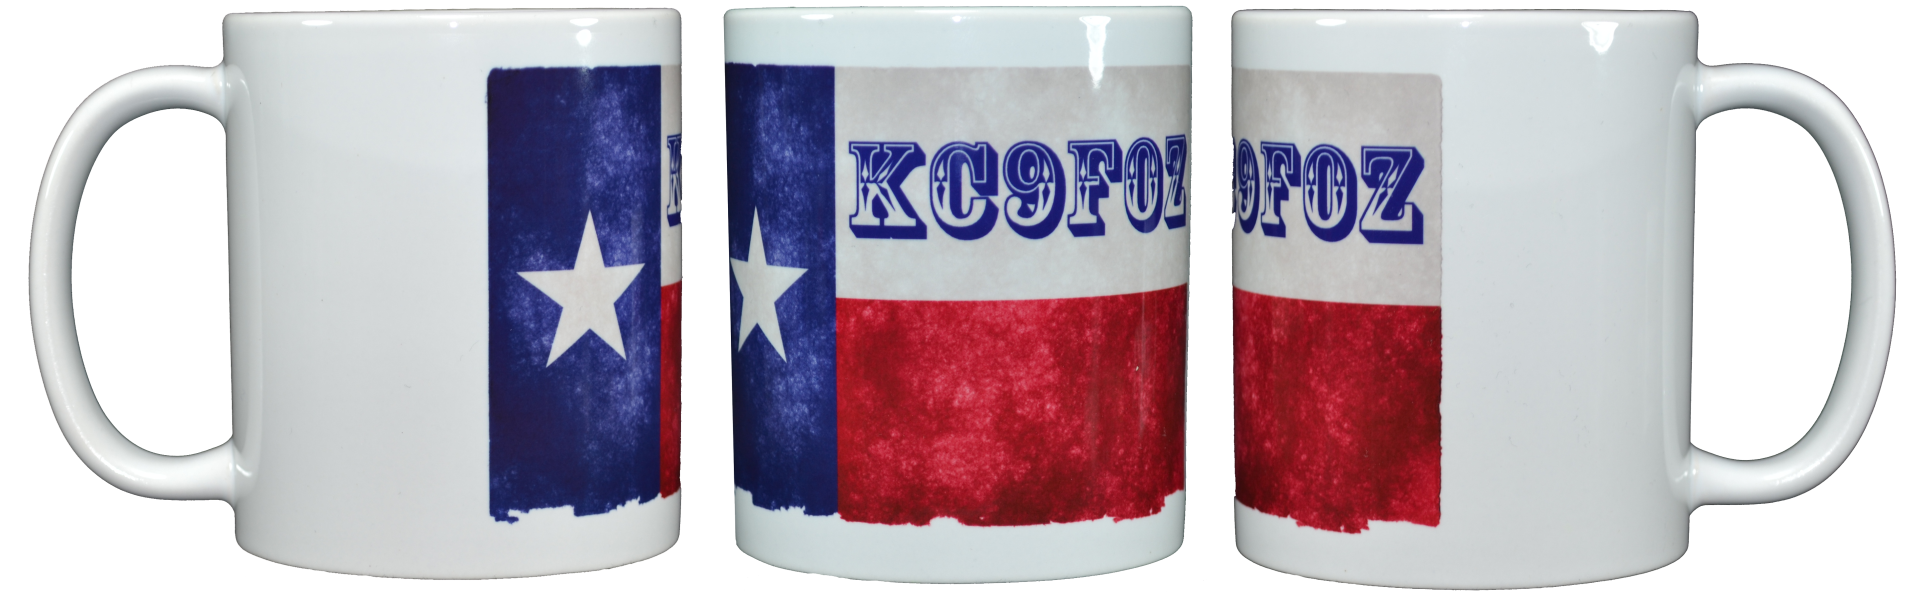 Ham Amateur Radio Texas Mug With Call and old style font.